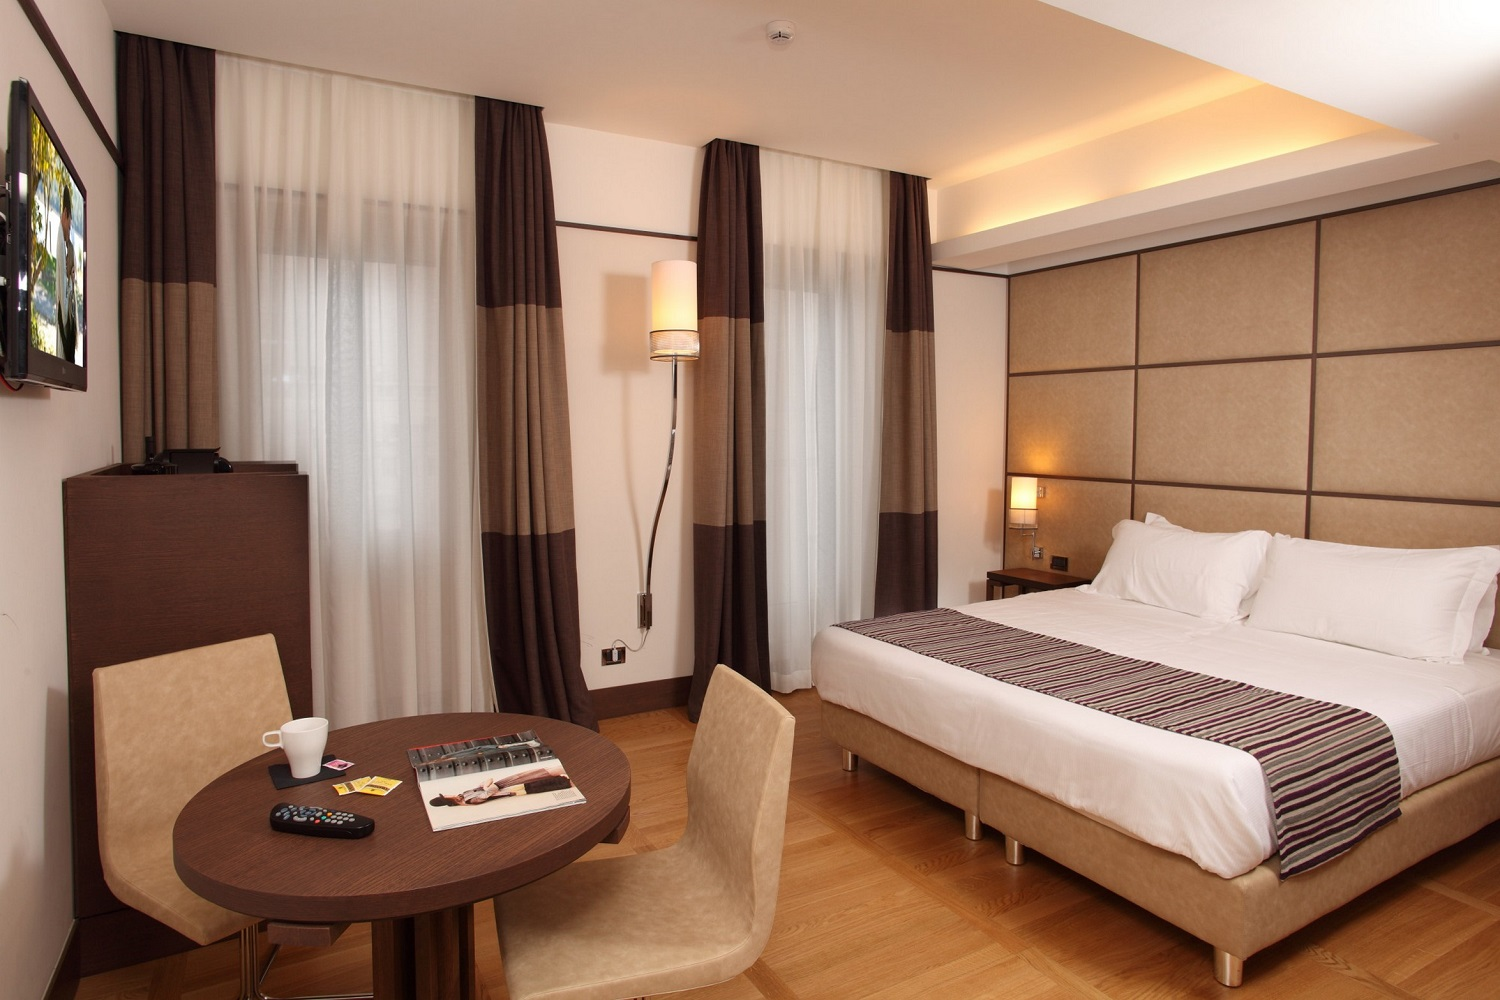 http://extranet.jetlinetravel.info/express-images/expres-the-independent-hotel-rome%20%283%29.JPG